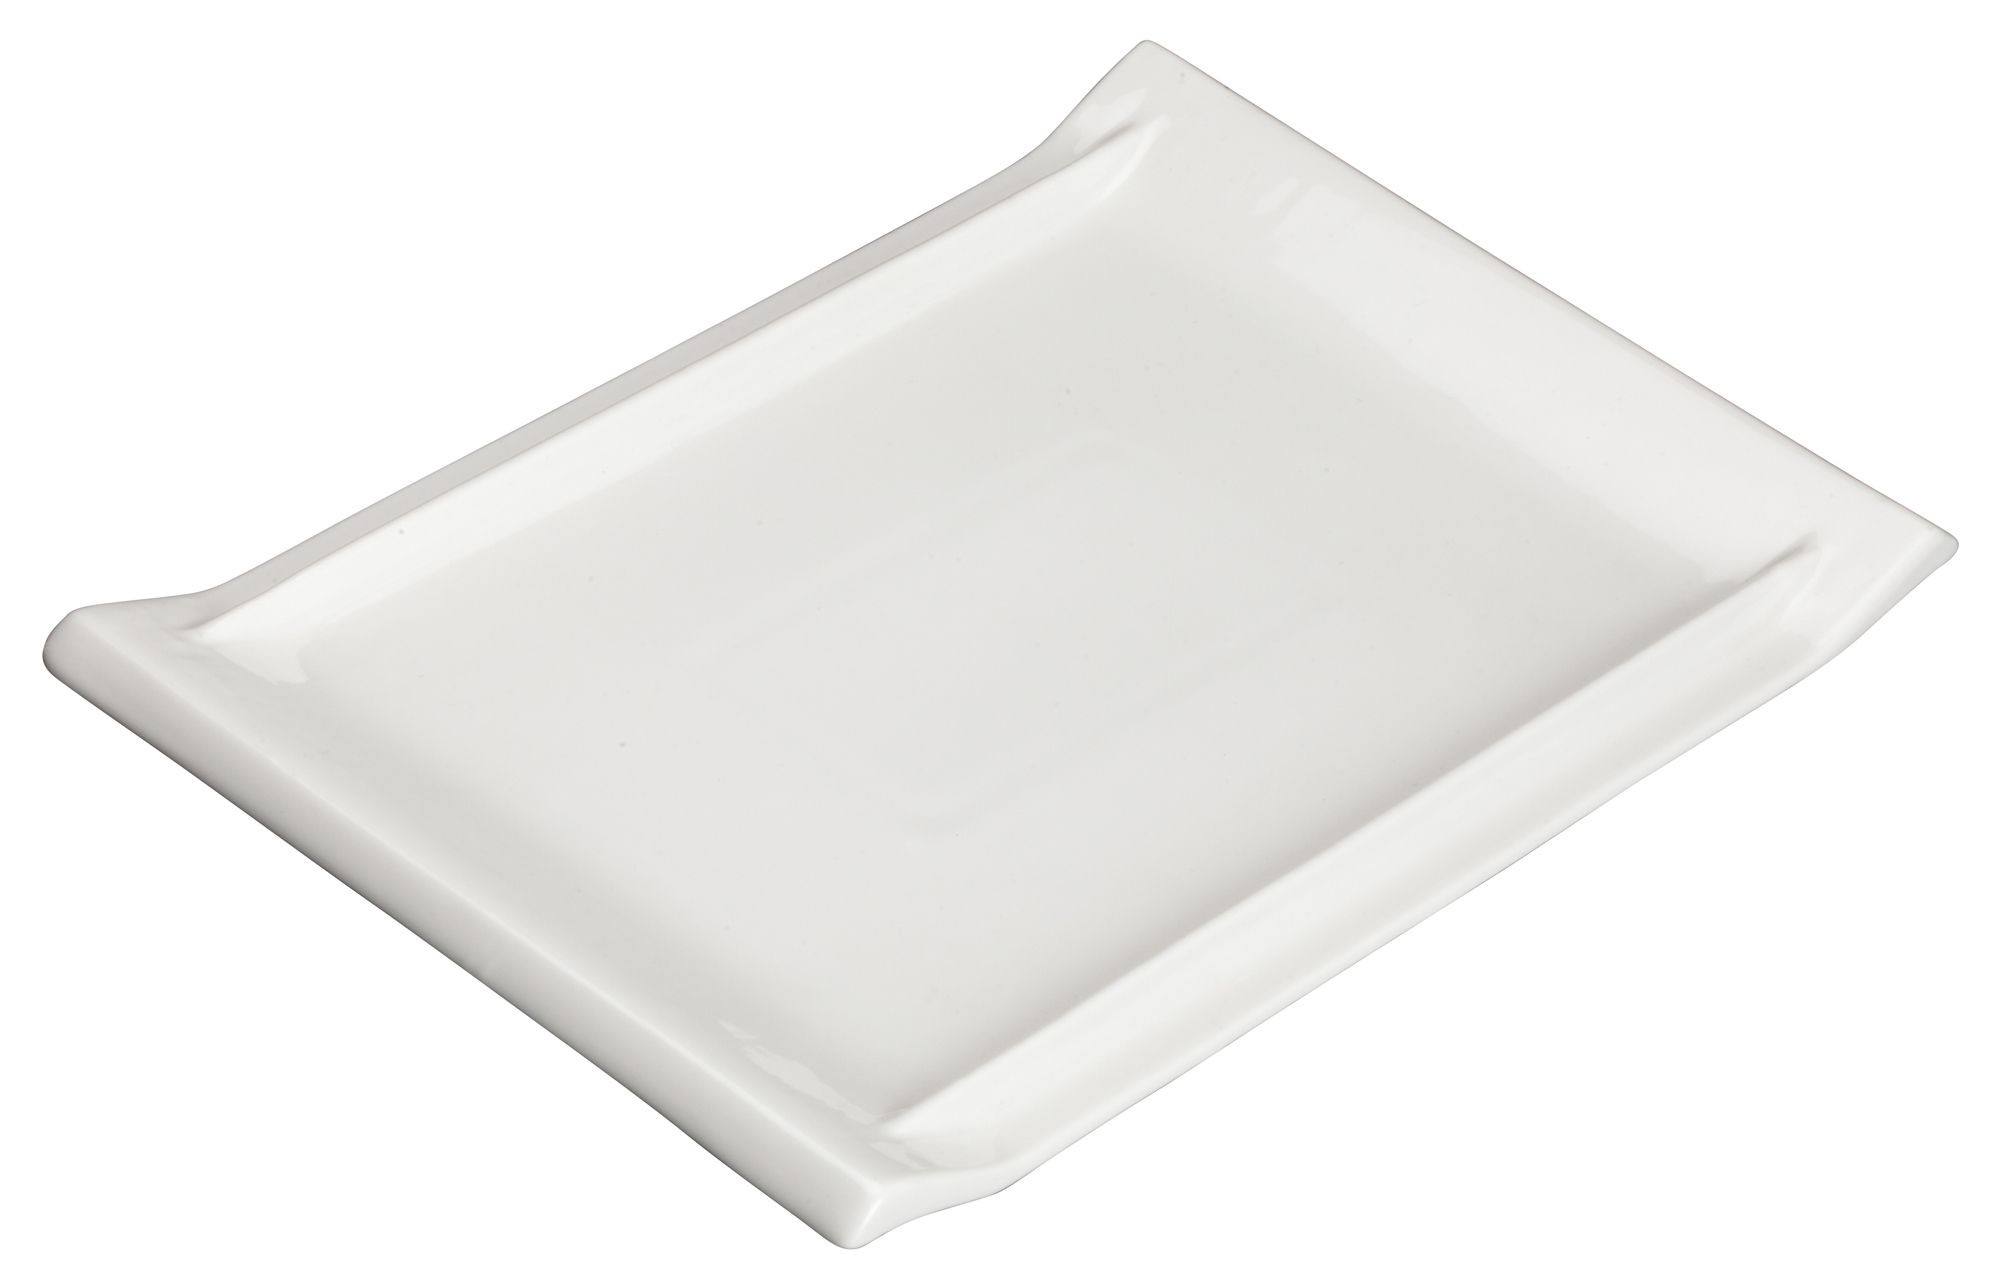 "Winco WDP017-112 Tollaro Porcelain Bright White Rectangular Platter 11-7/8"" x 8"""